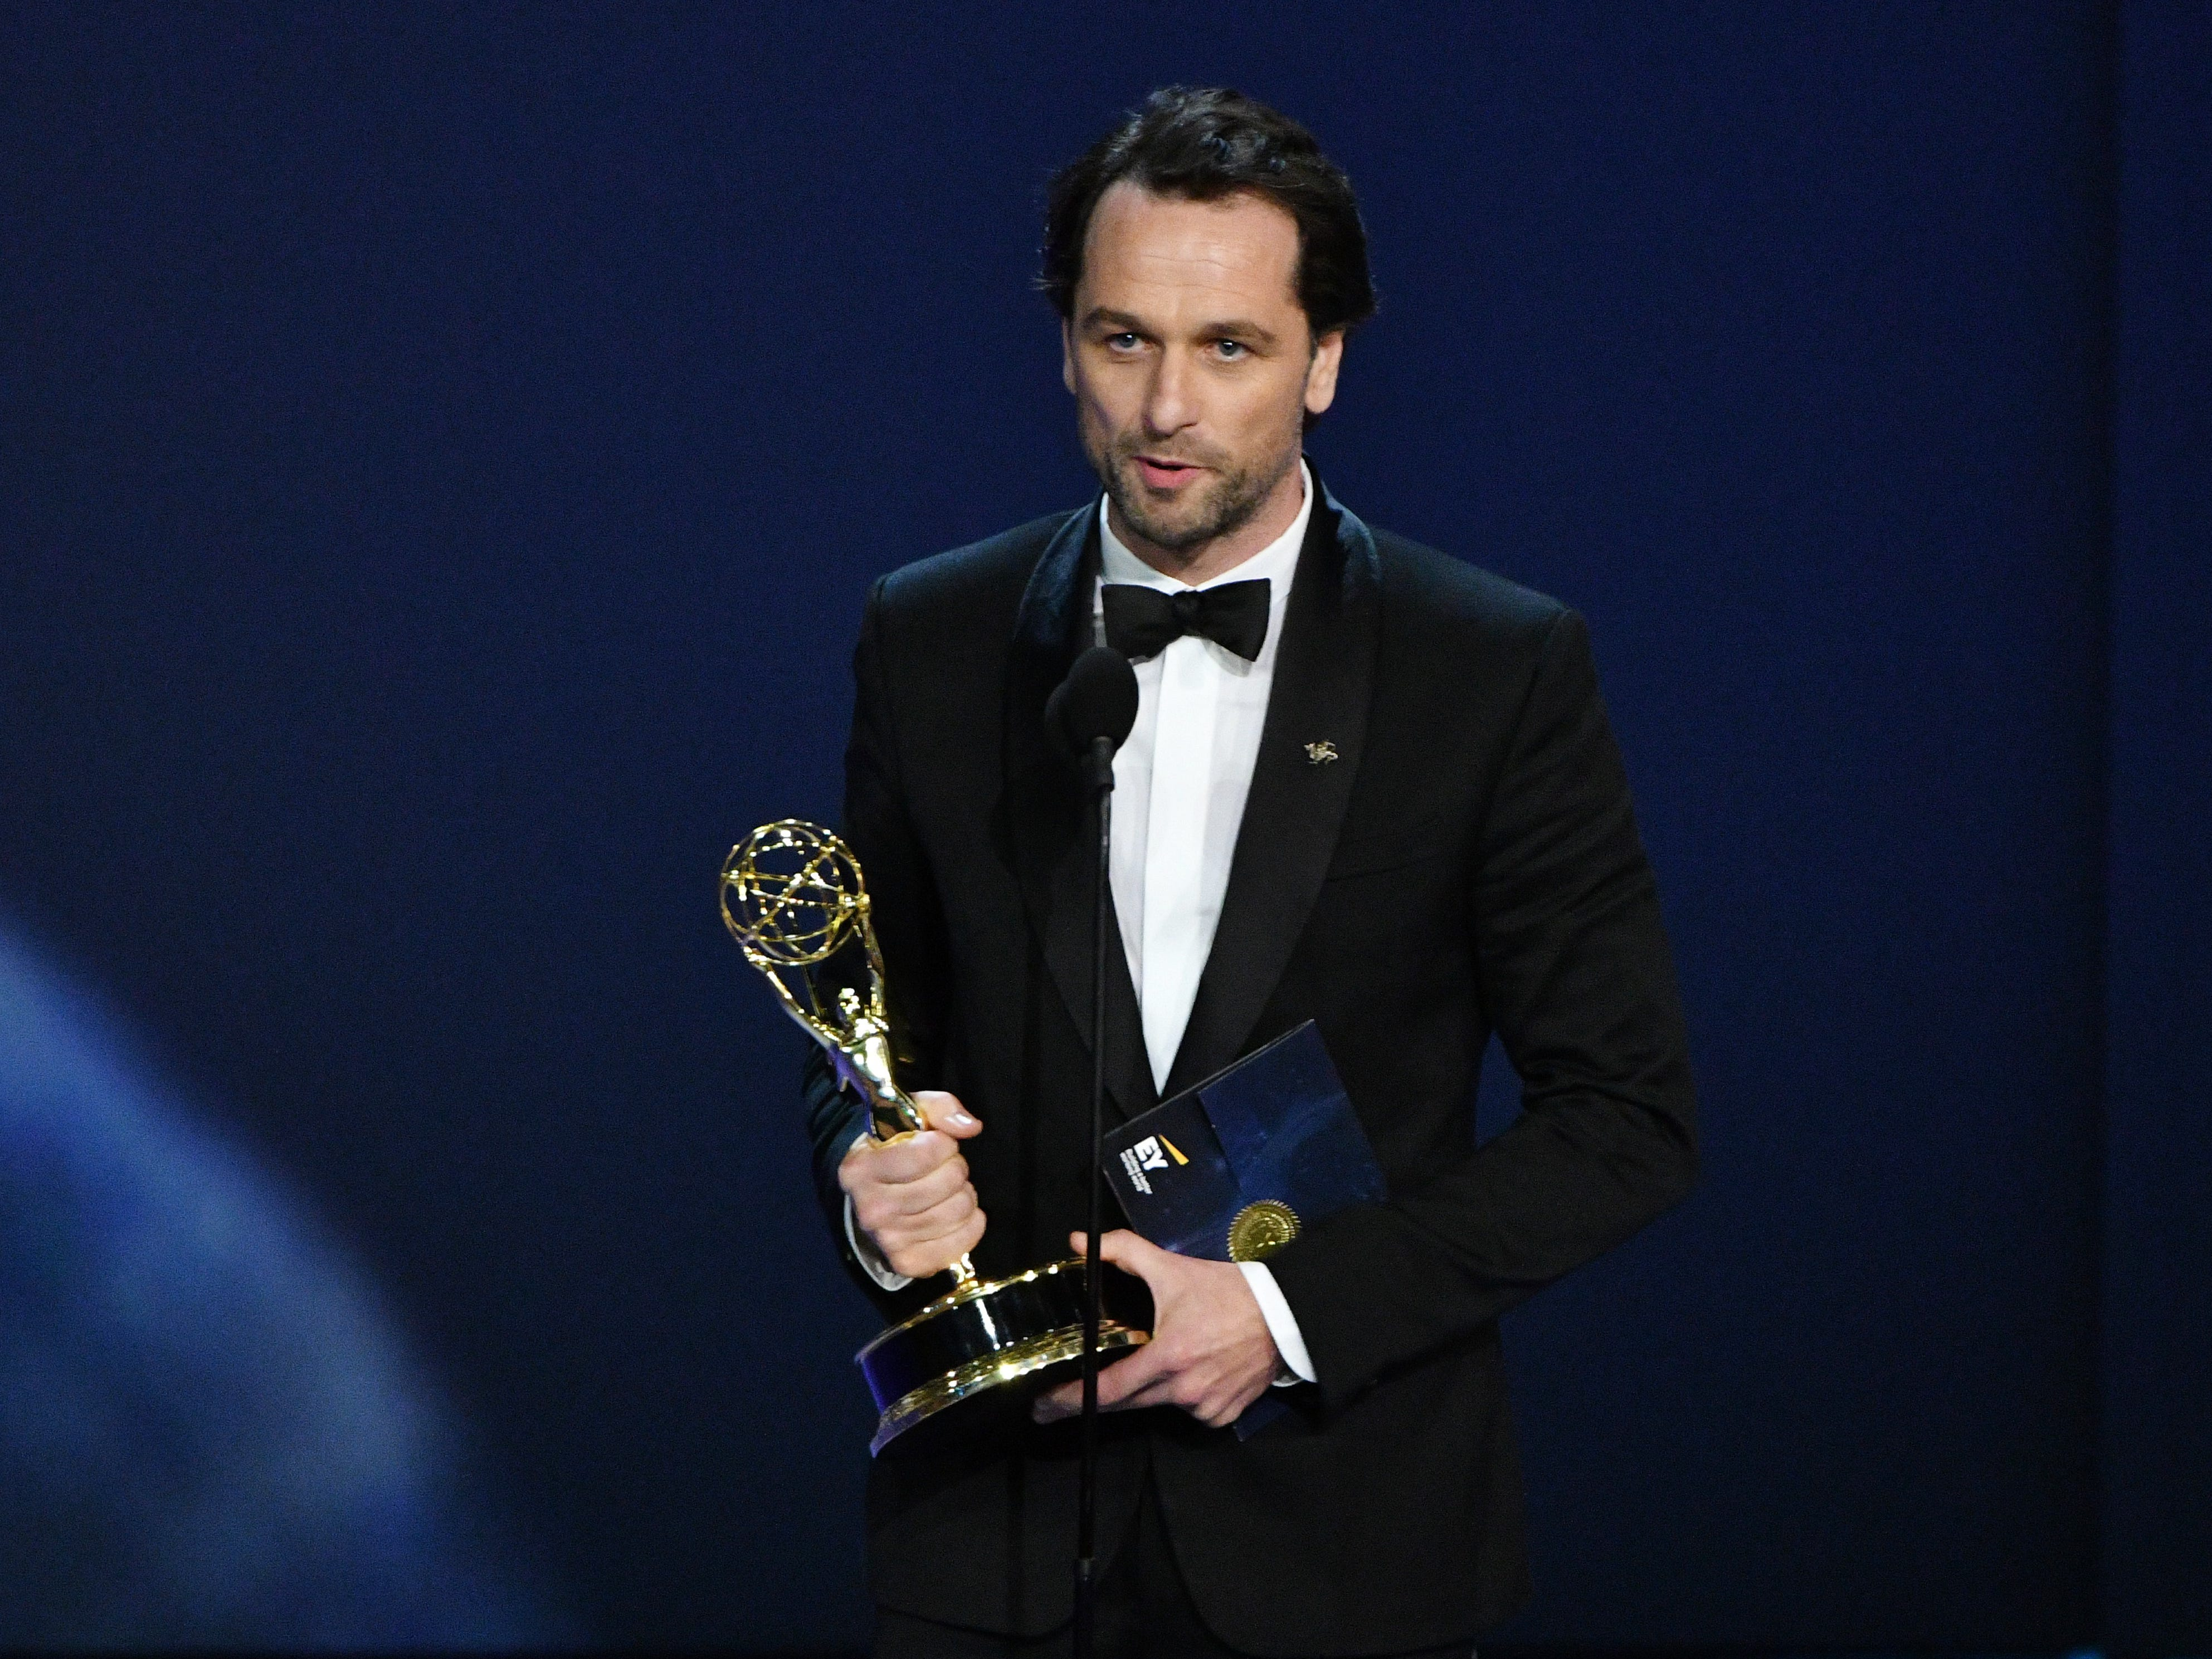 """Matthew Rhys accepts the award for lead actor in a drama series for his role in """"The Americans"""" on FX Networks."""